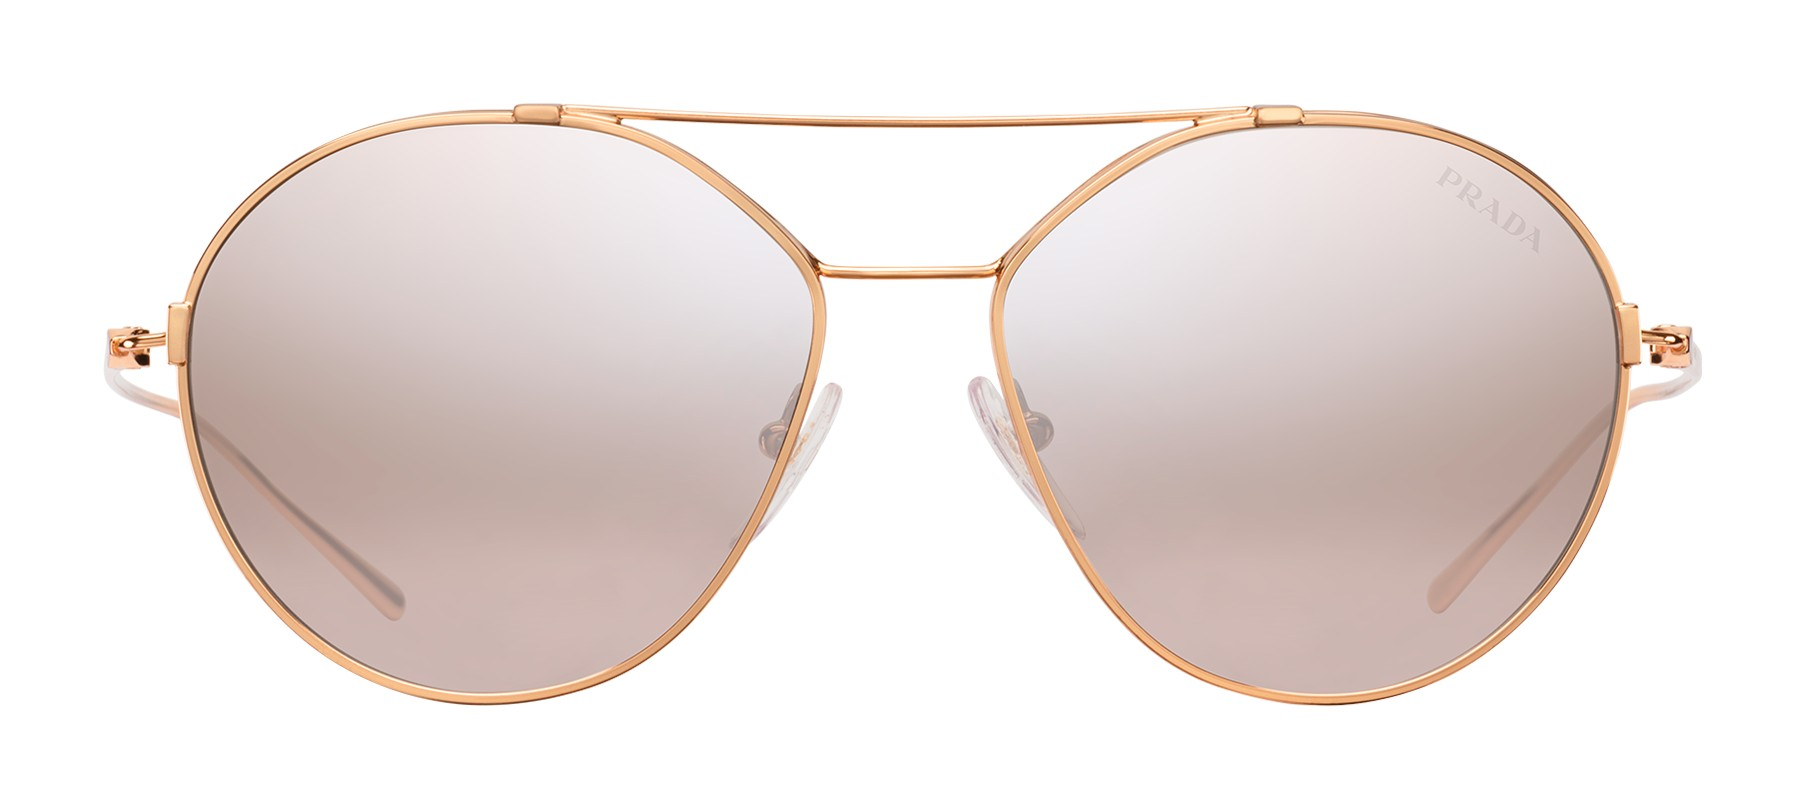 558683c238e4 Prada - Prada Eyewear Collection - Rose Gold Aviator Sunglasses - Prada  Collection - Sunglasses - Prada Eyewear - Avvenice